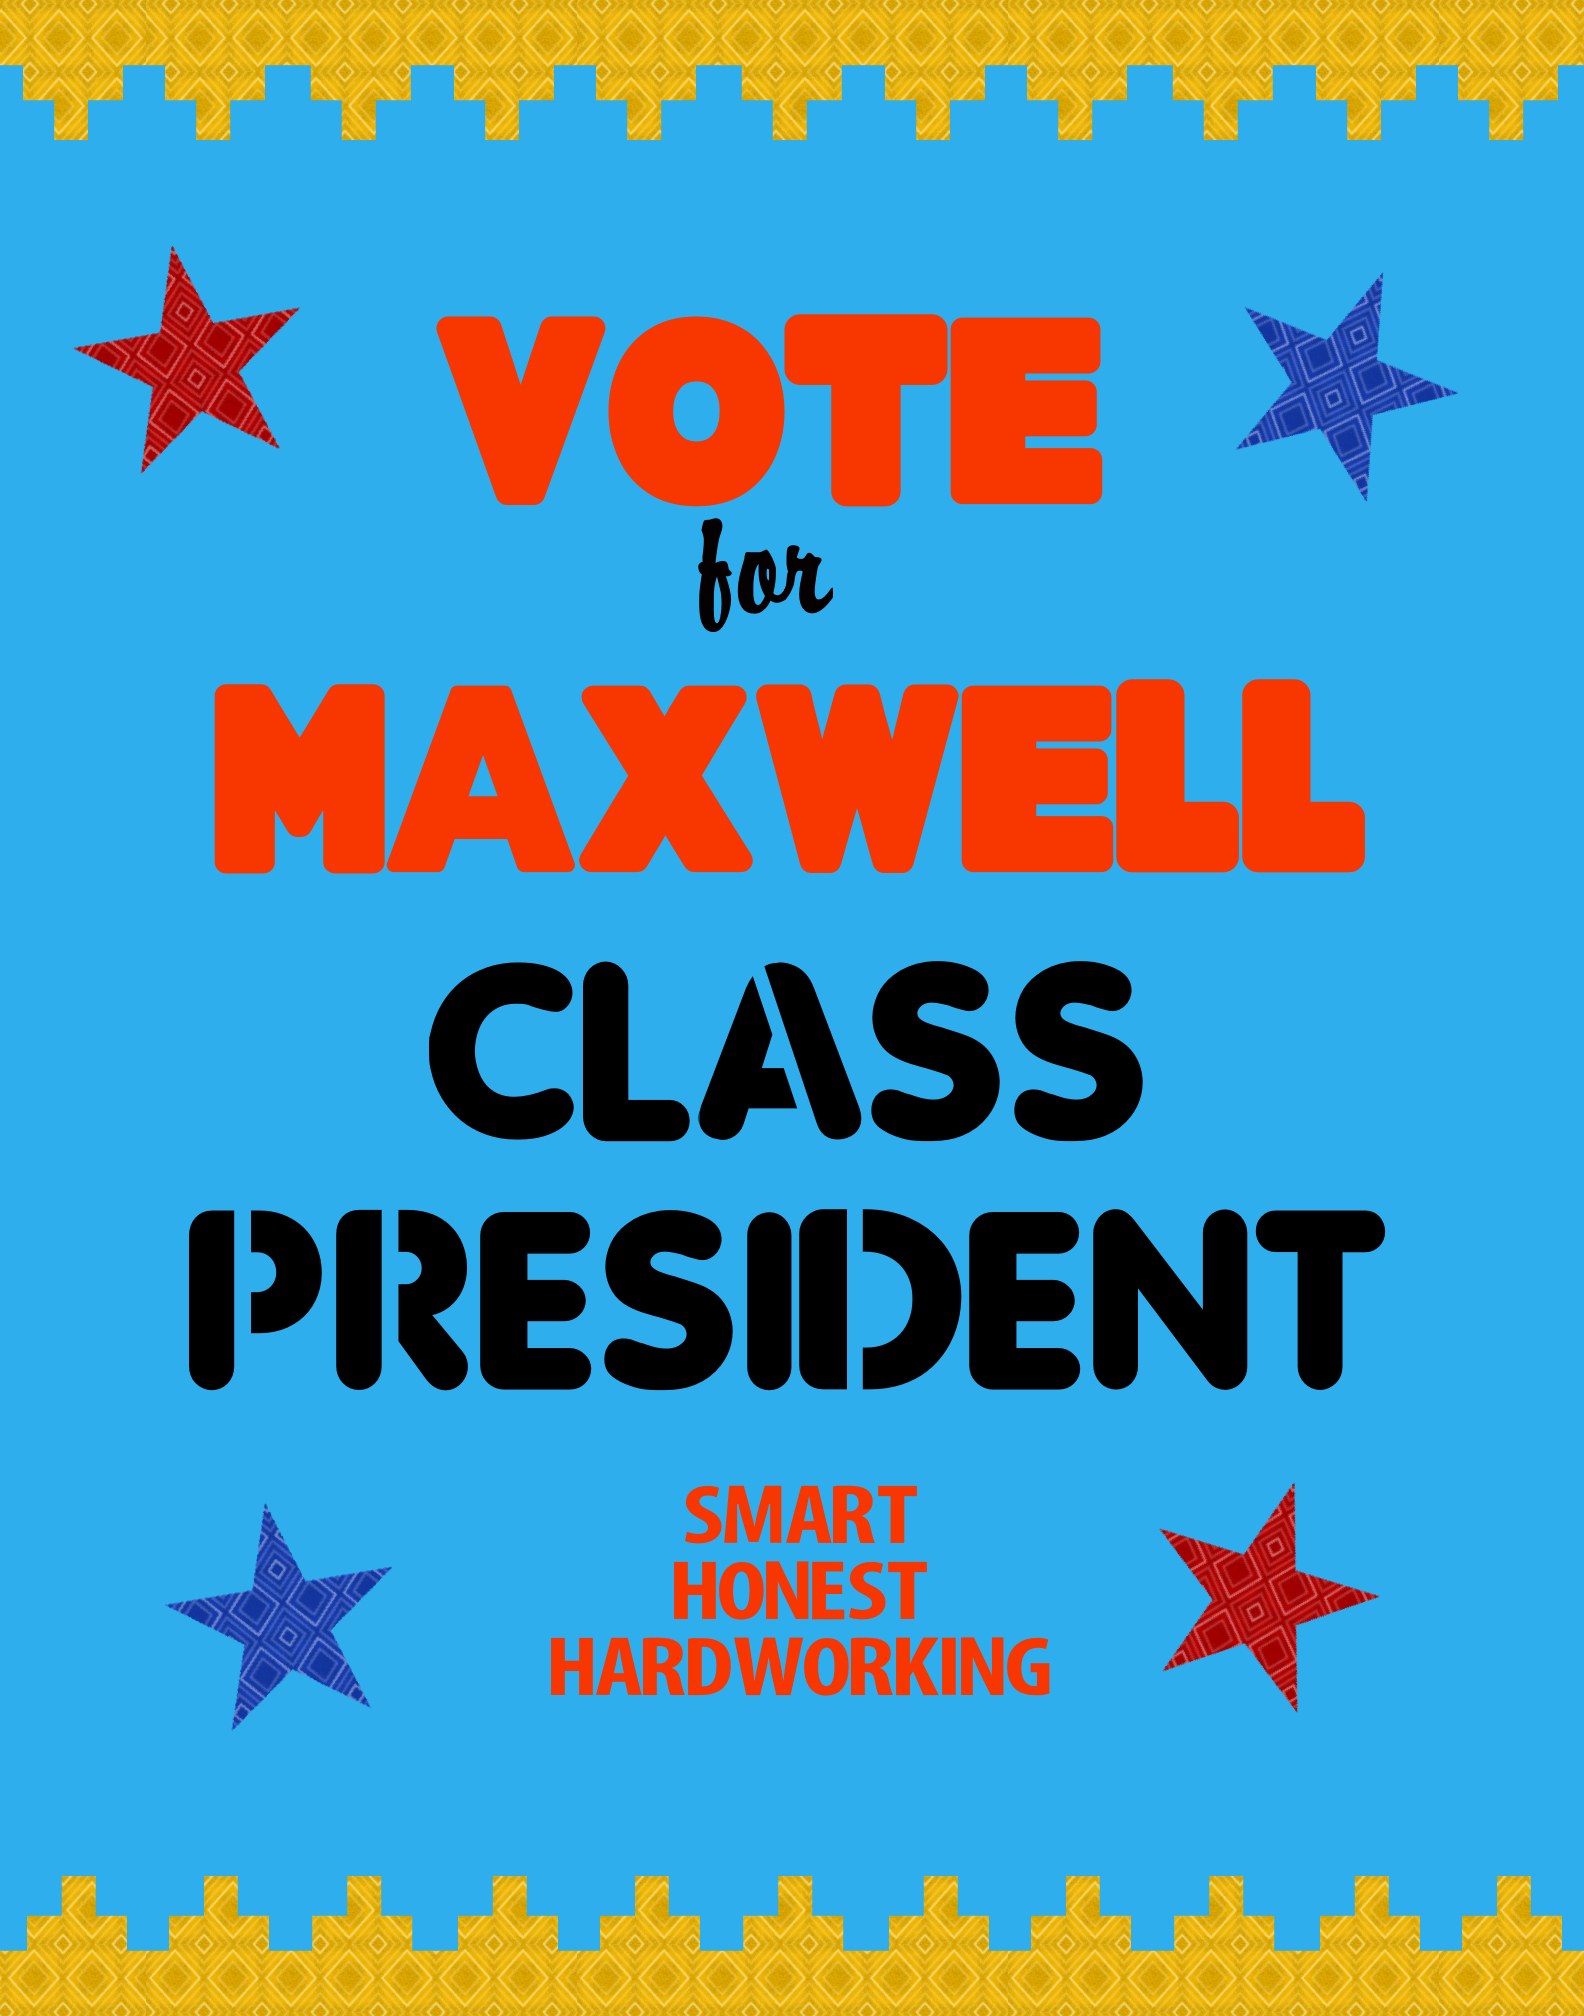 Make an Election Poster | Class President Sign | School